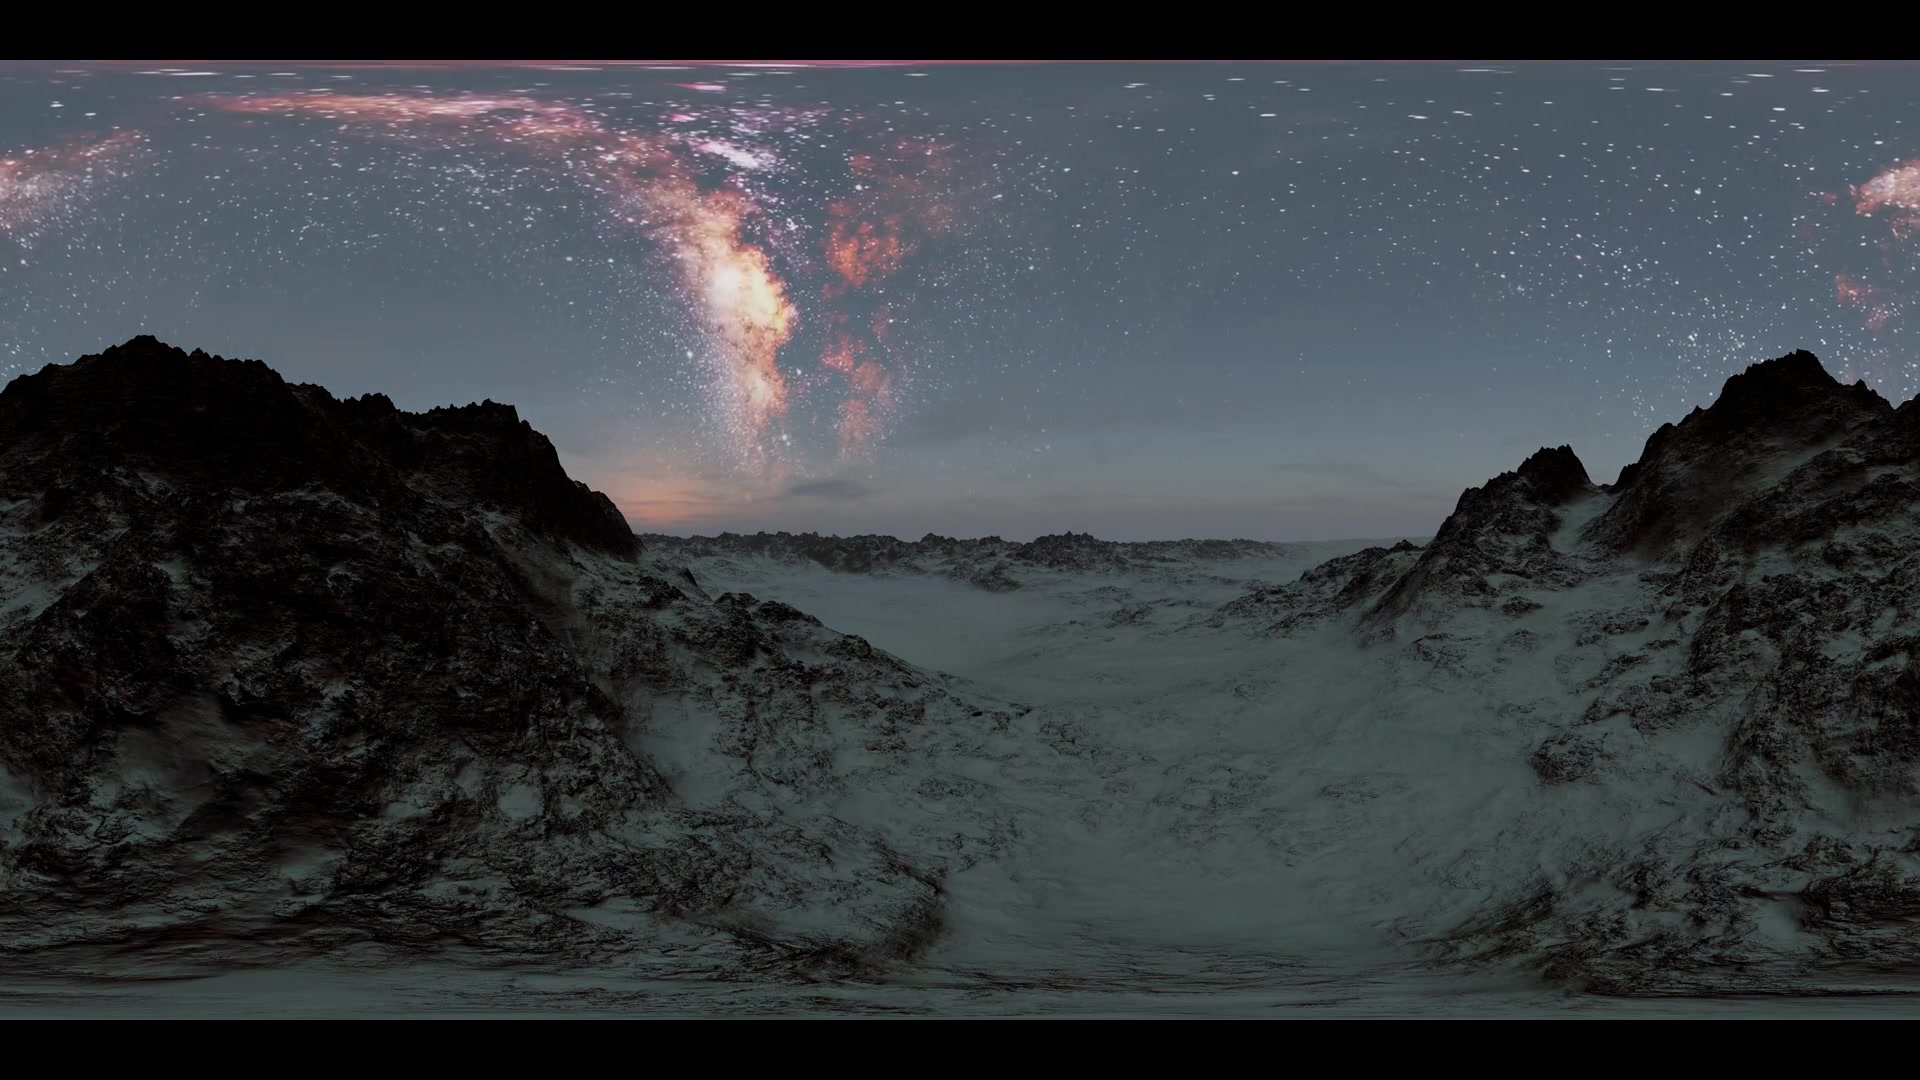 6K Milky Way stars at sunset in mountains virtual reality 360 degree video. Elements of this image furnished by NASA